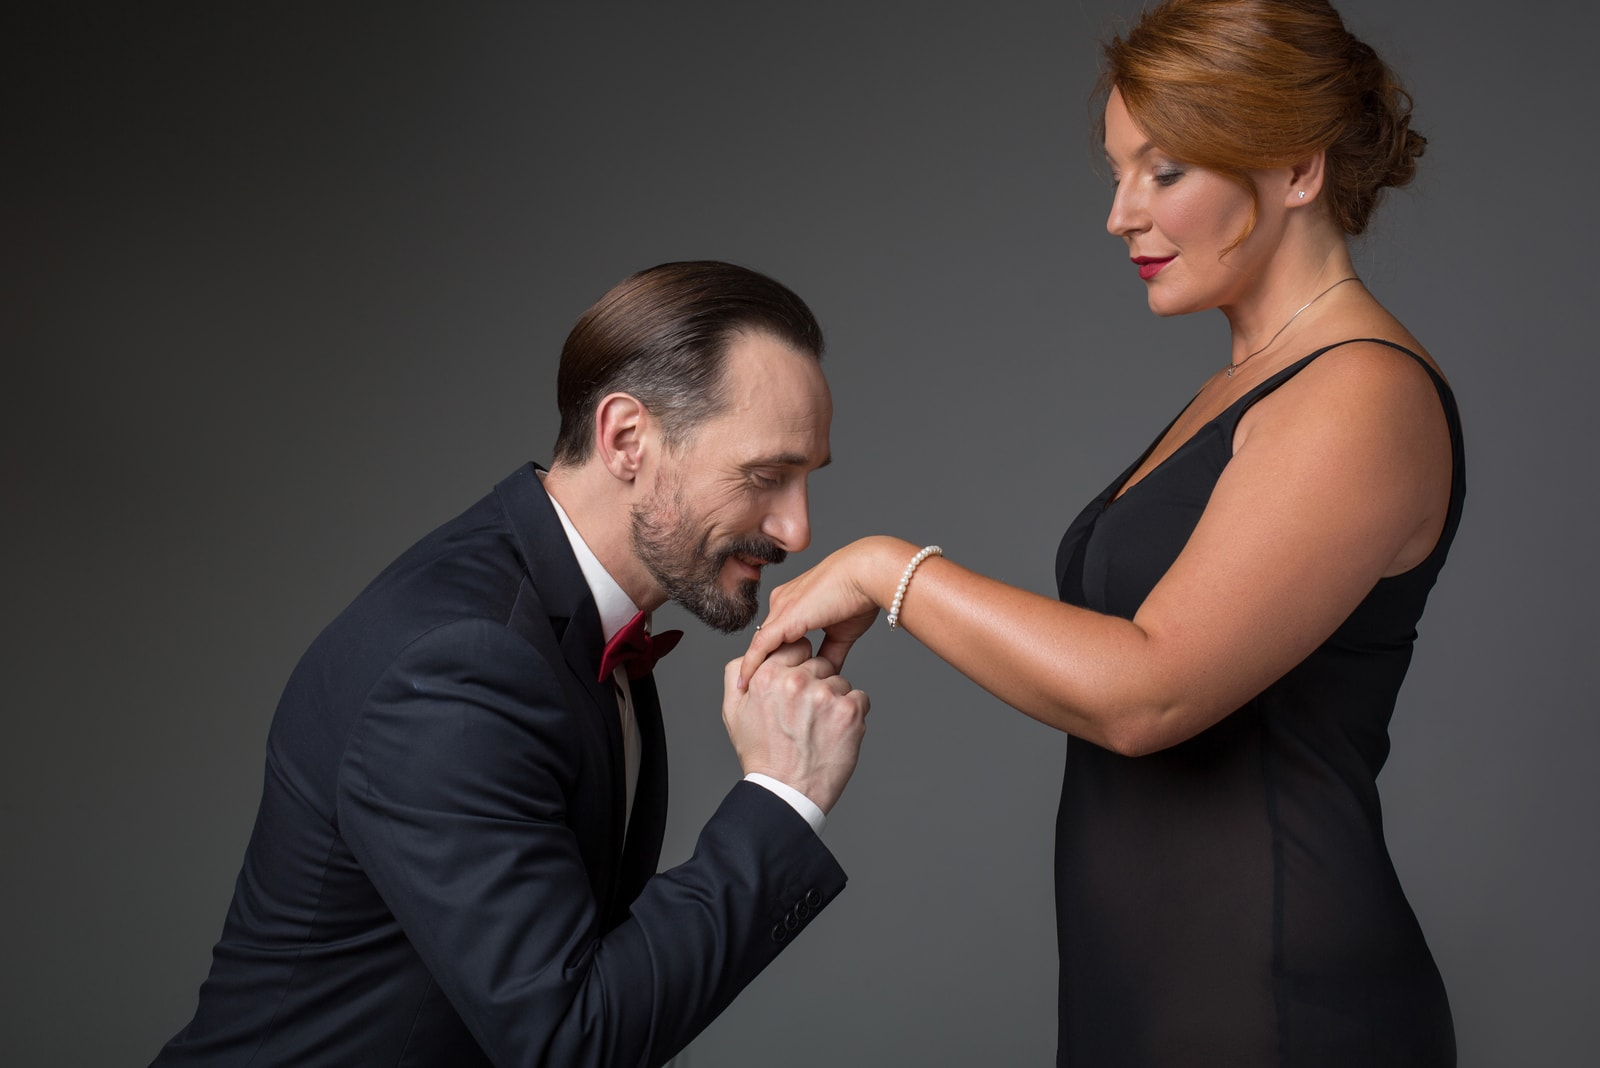 man holding female hand with gold ring and kissing it.